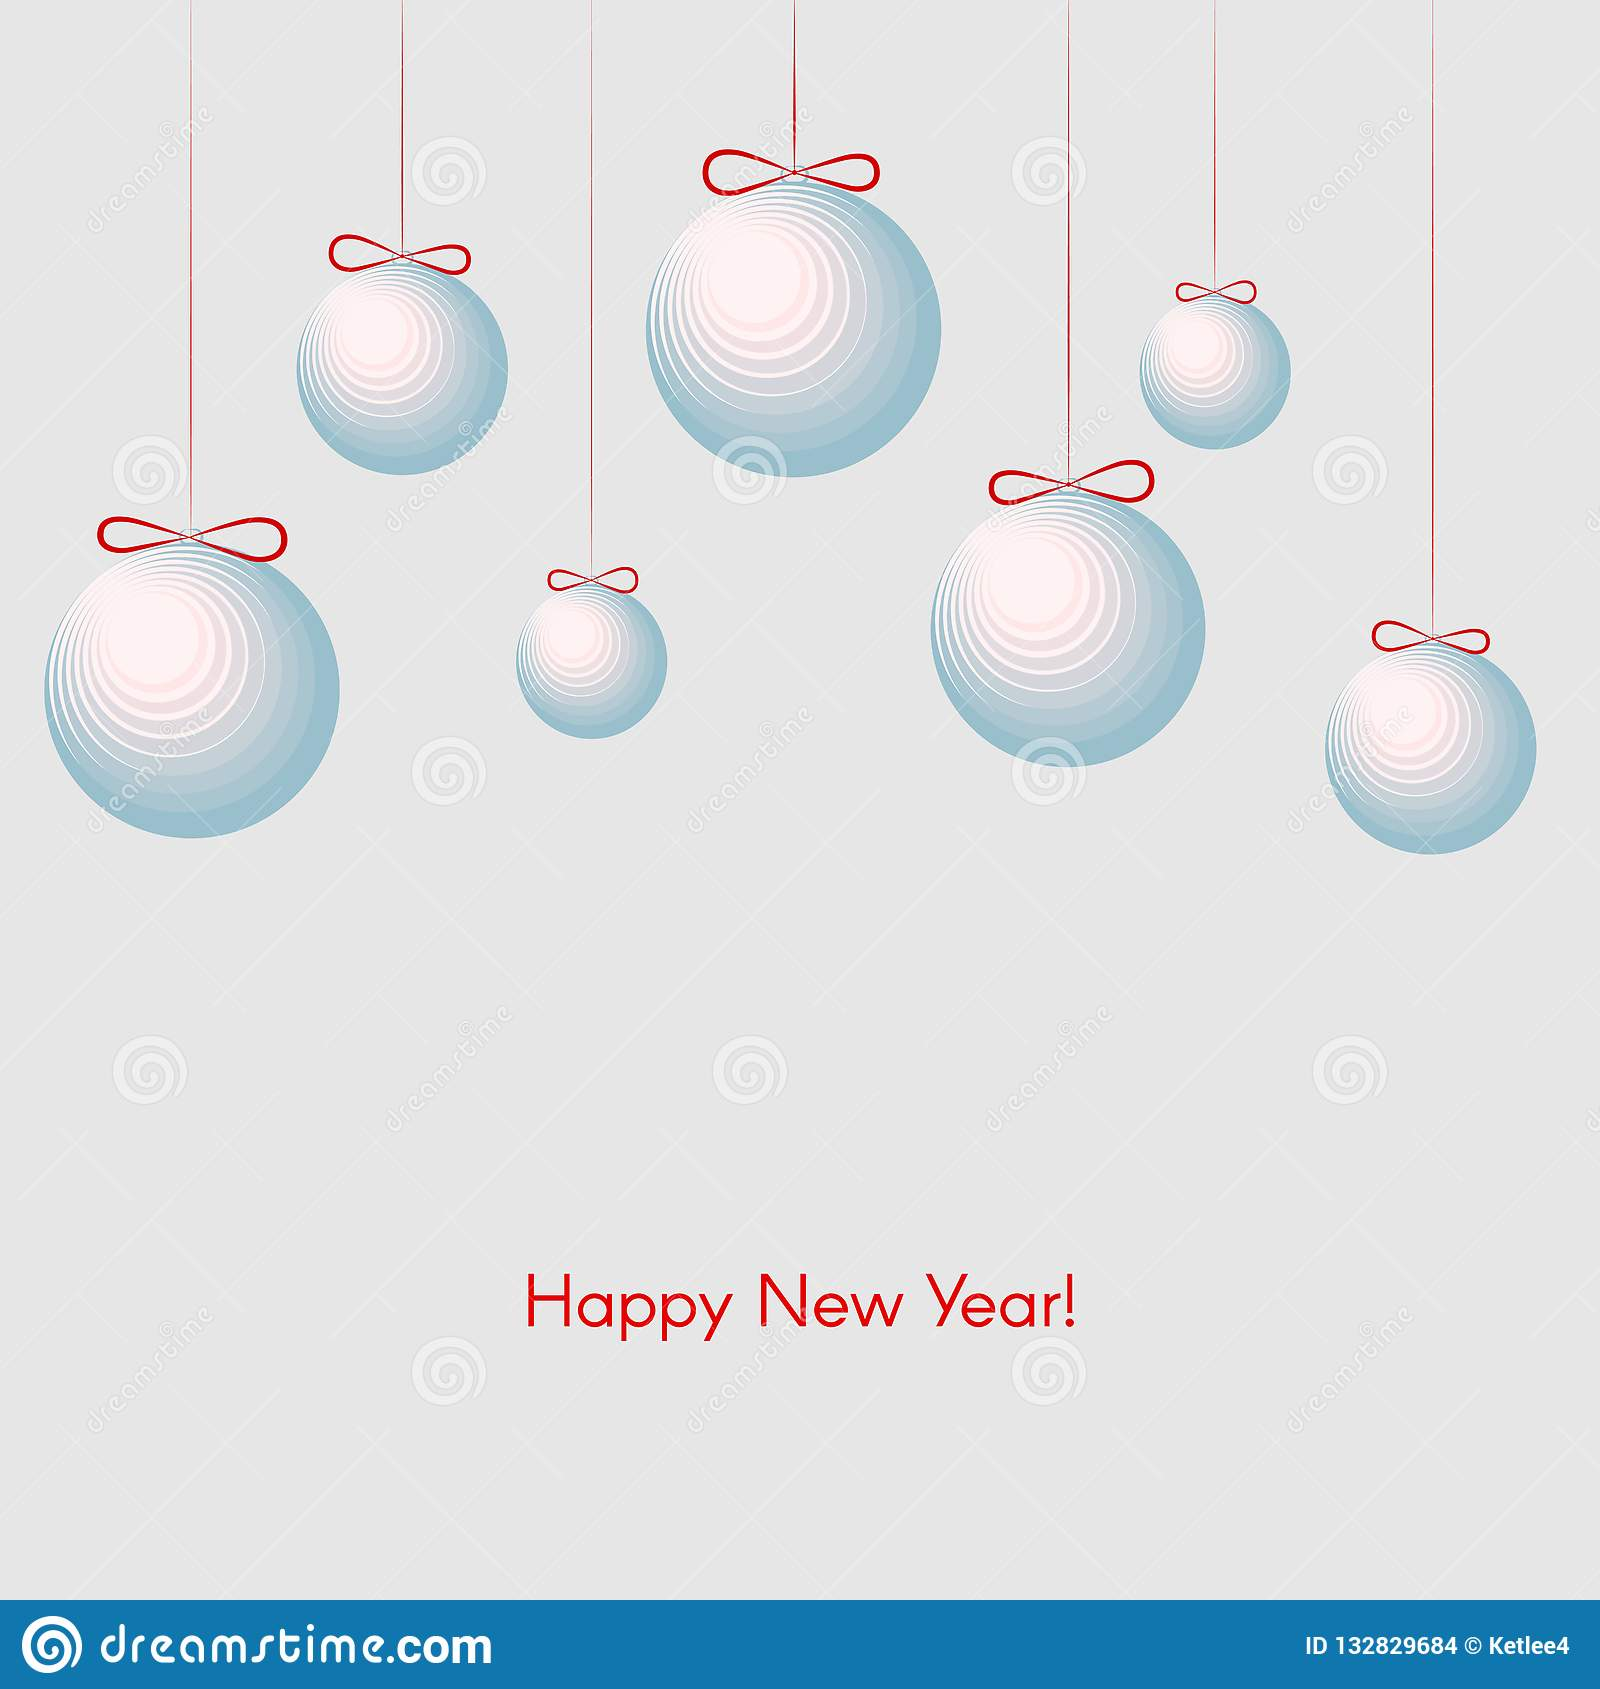 Pattern with festive balls with text Happy New Year Winter background for New Year and Christmas